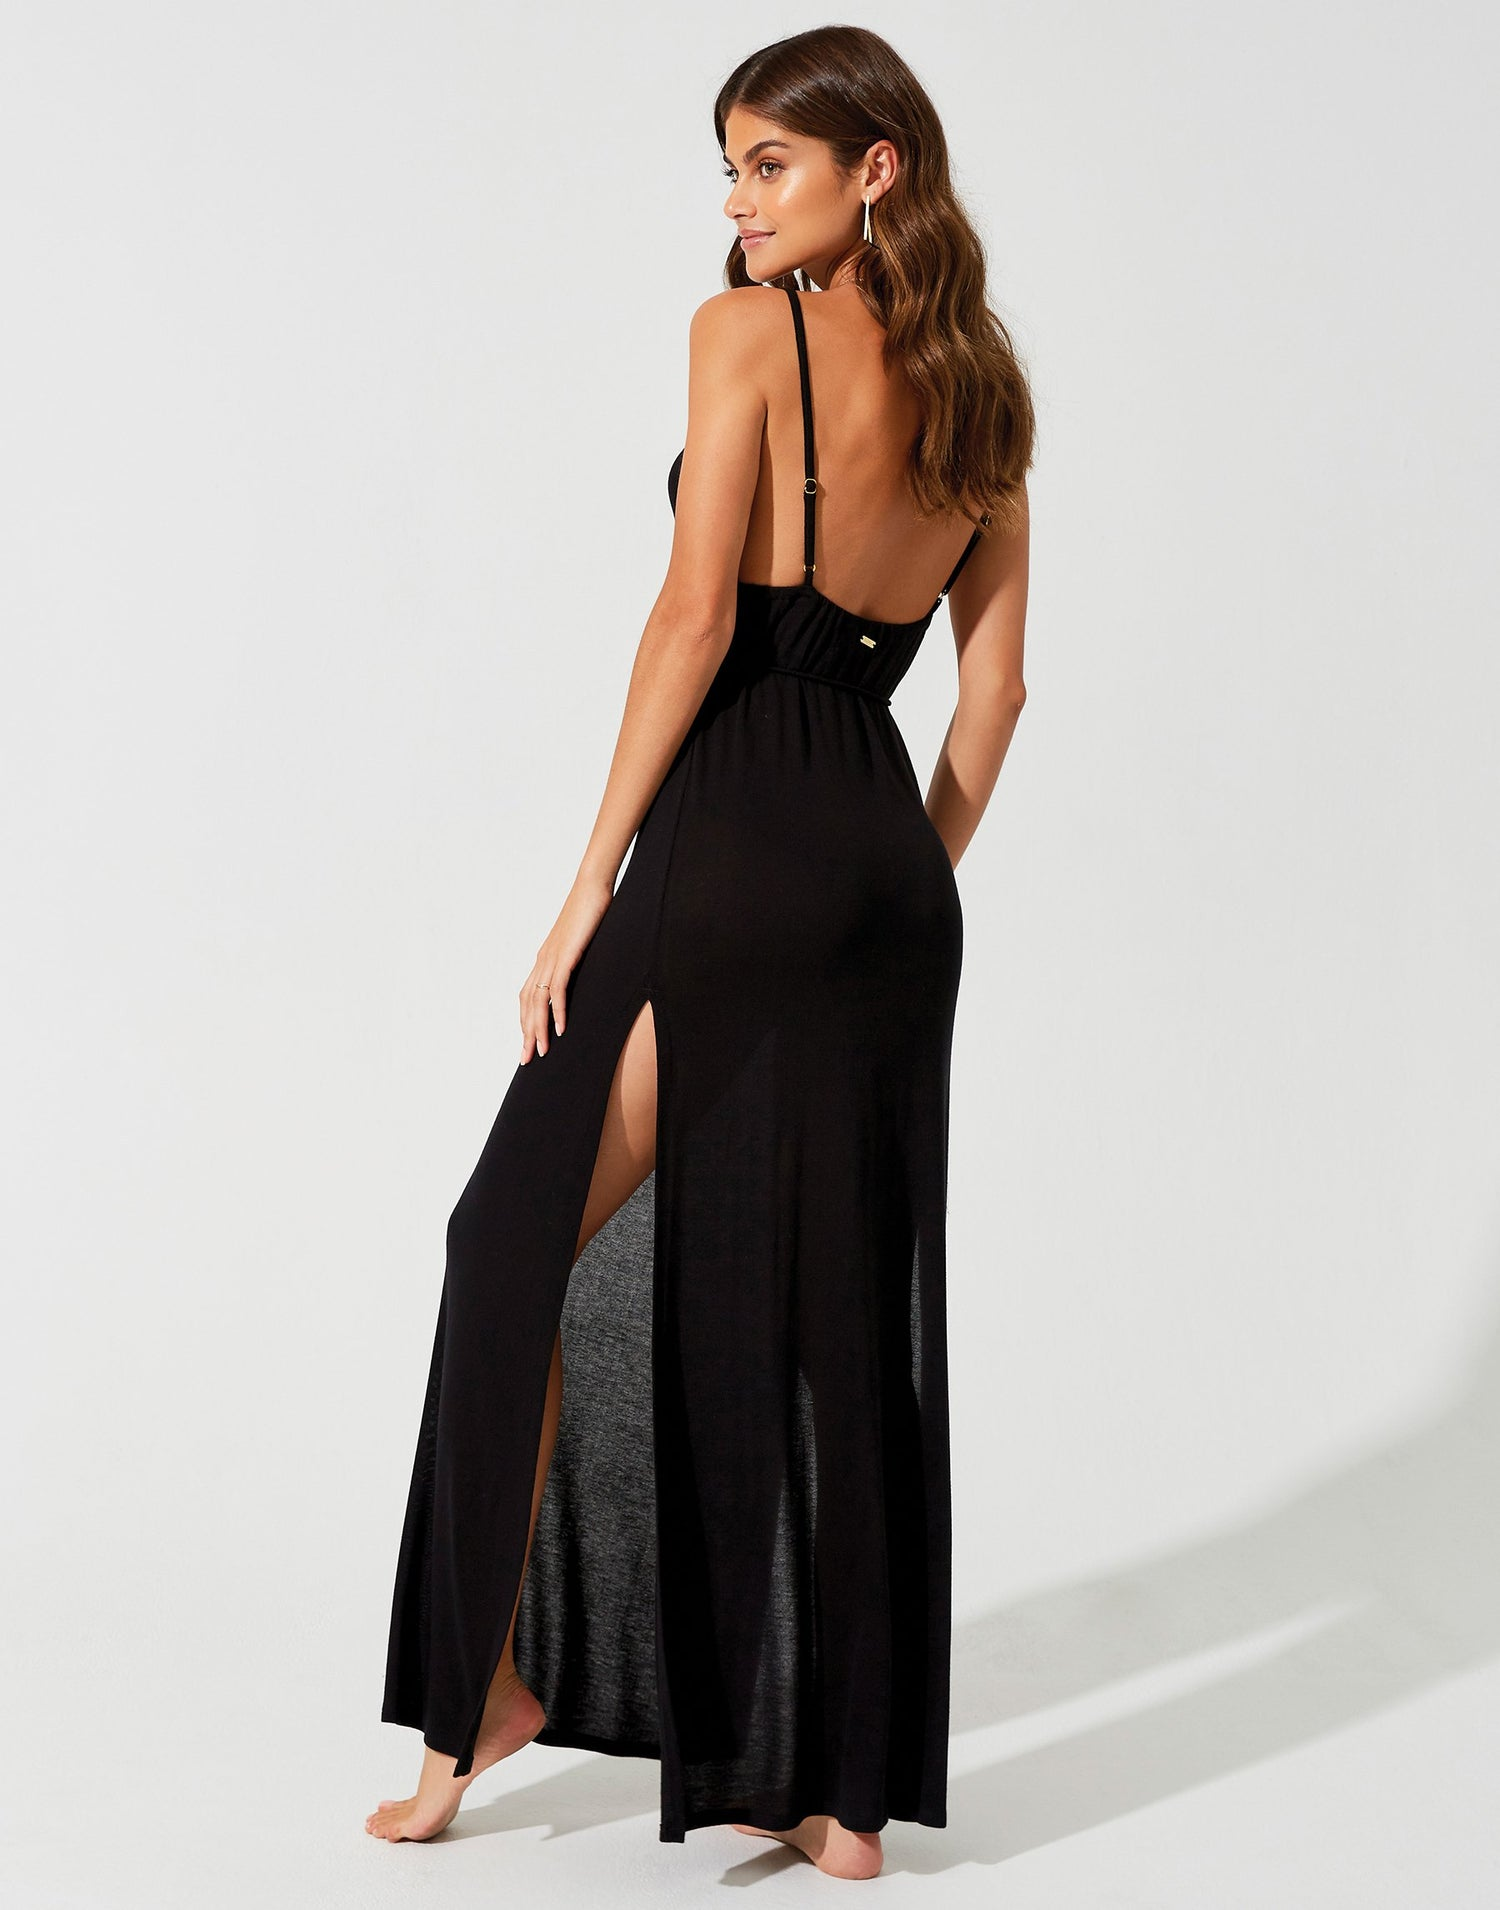 Lolo Maxi Dress in Black with Leg Slits and Open Back - back view